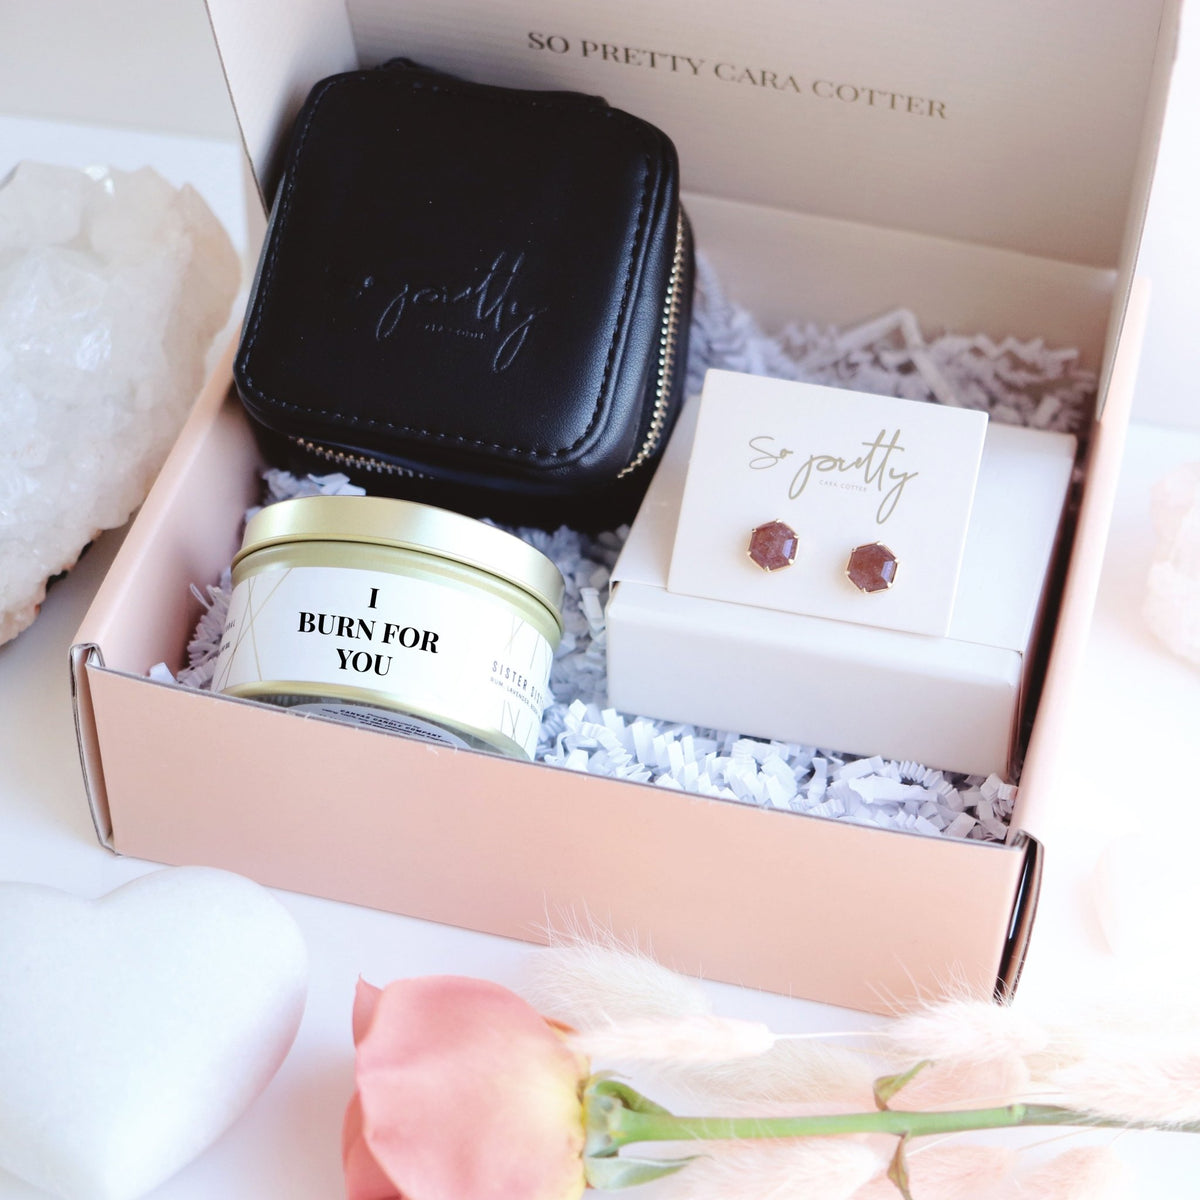 I Burn For You Valentine's Day Box - SO PRETTY CARA COTTER